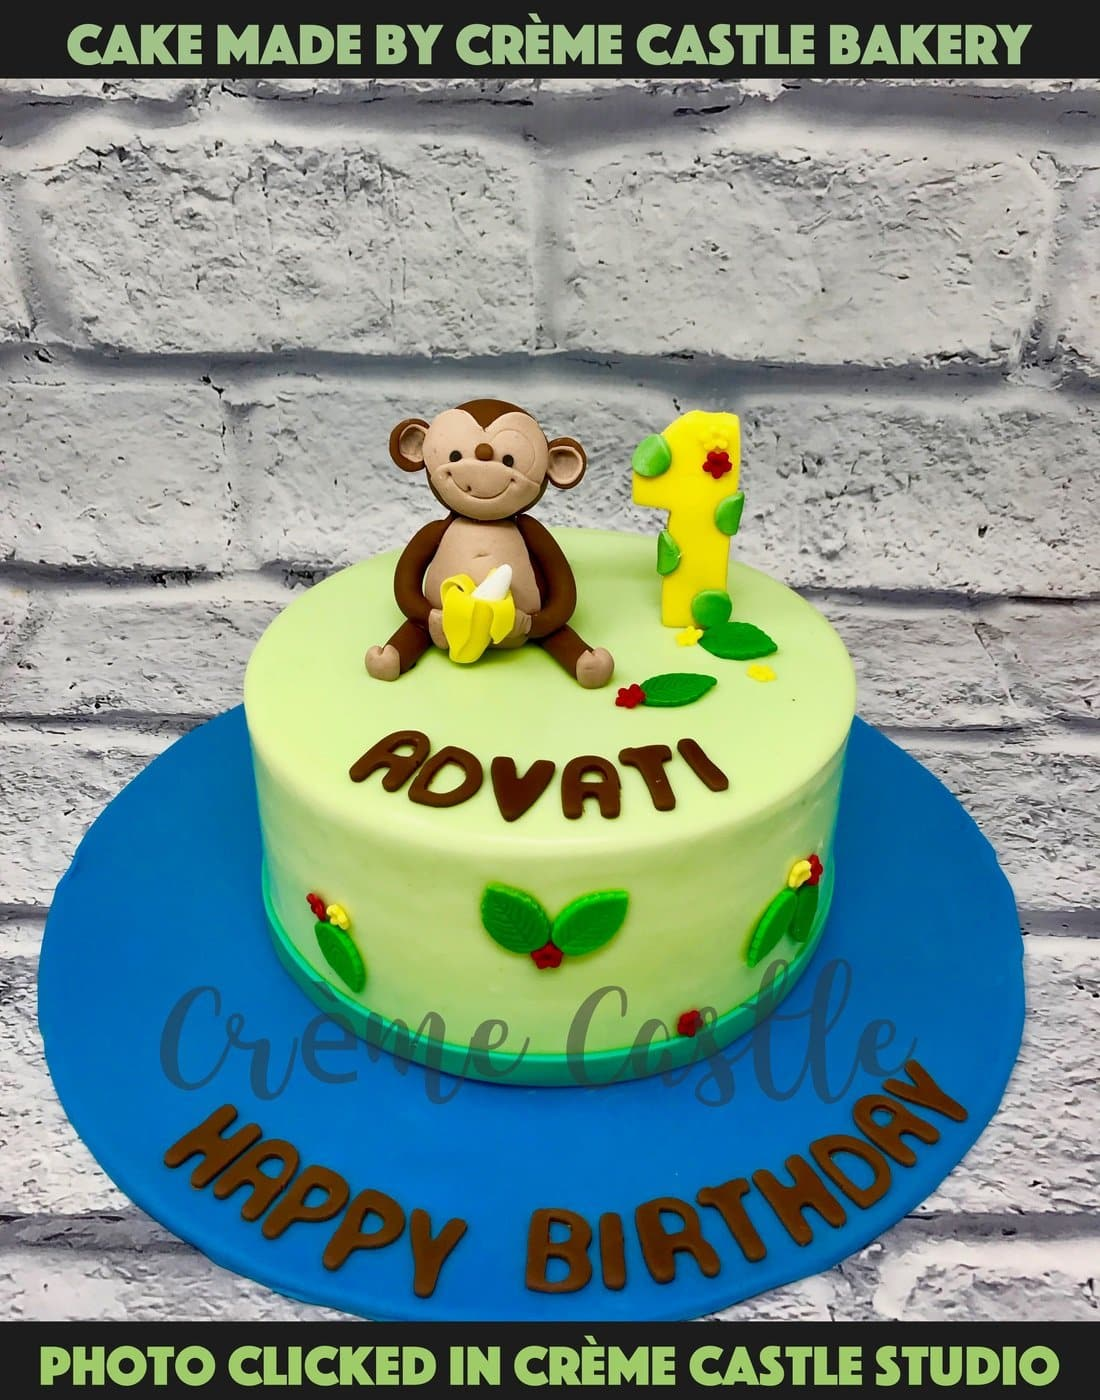 A cake with a baby monkey on top for a kid's first birthday with number 1 in banana theme. A cute cream covered cake